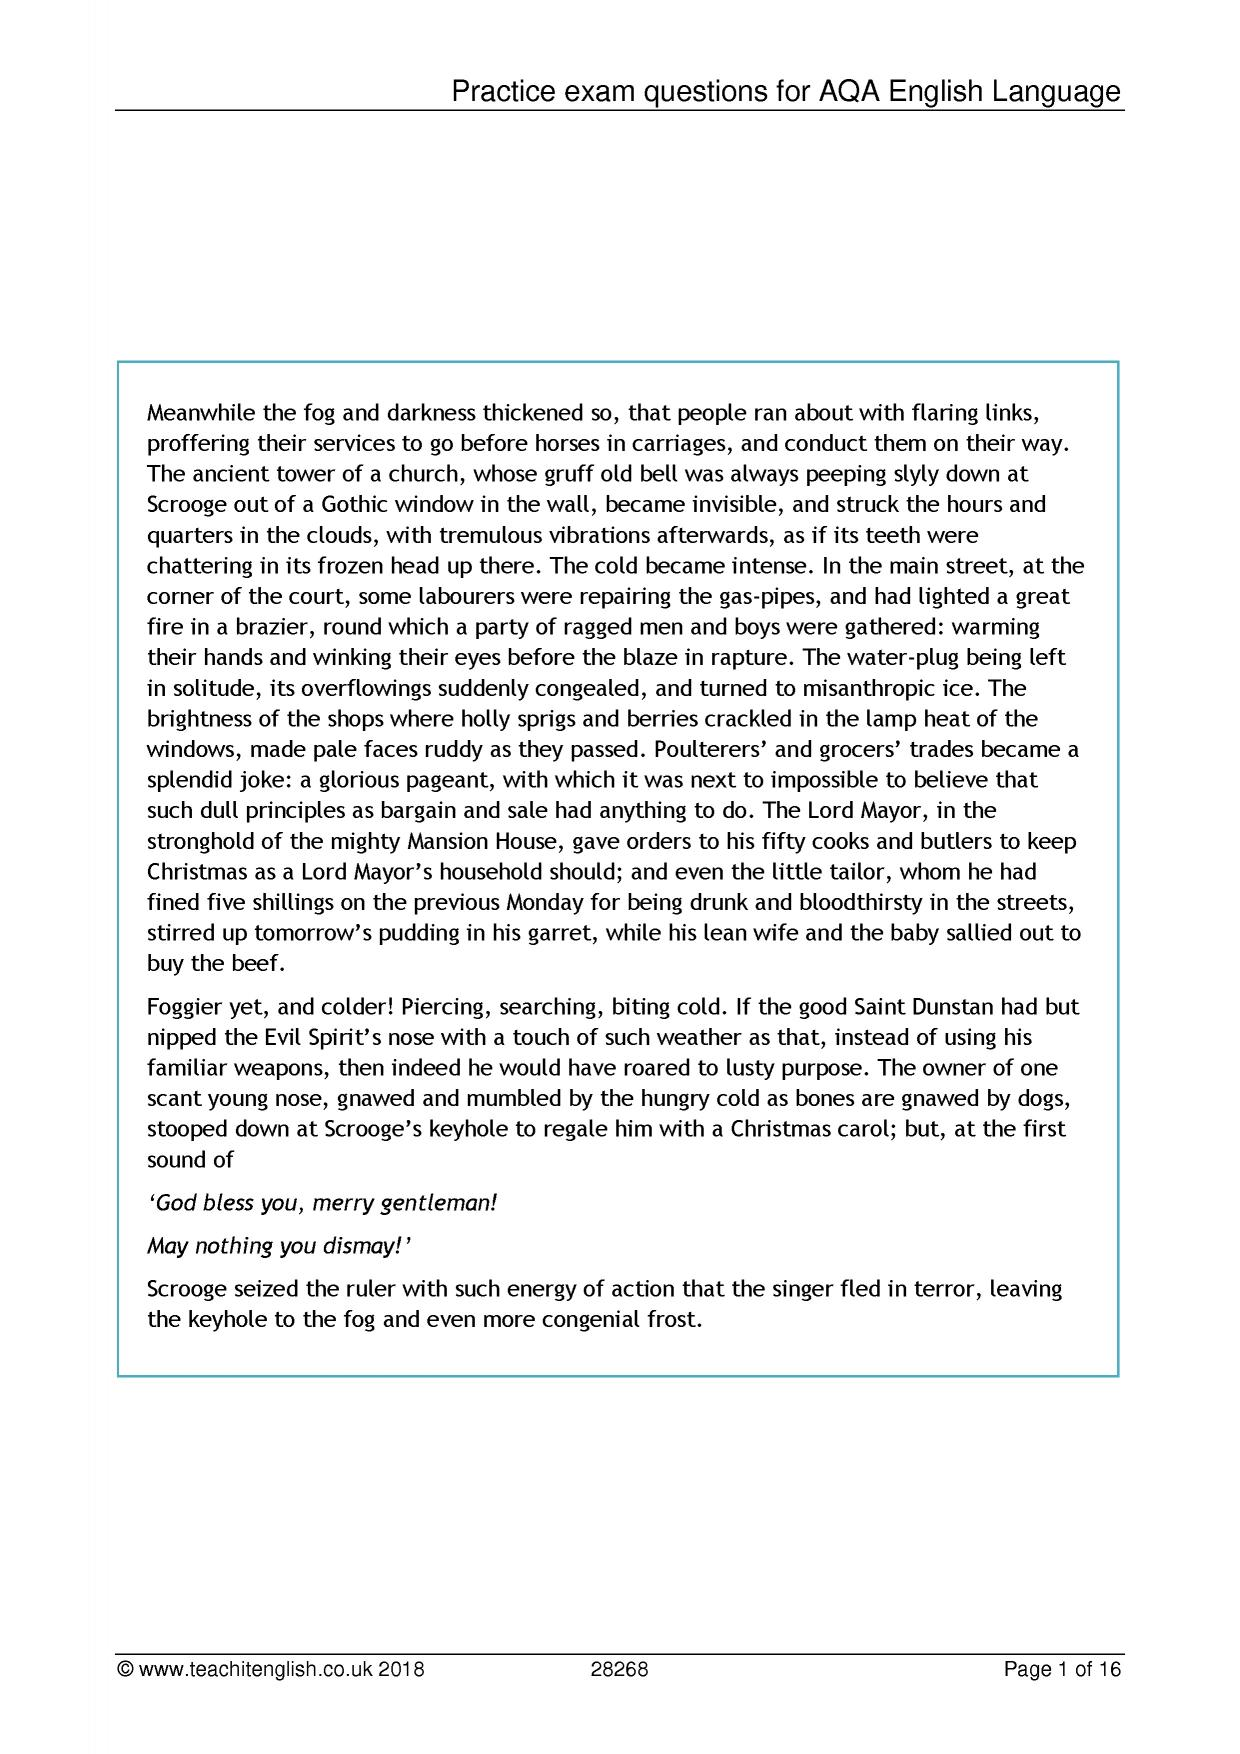 stylistic prose techniques in invisible man Literary terms and devices: ap english literature and composition course description from the discuss ap prose prompt november 1: invisible man mwds due.